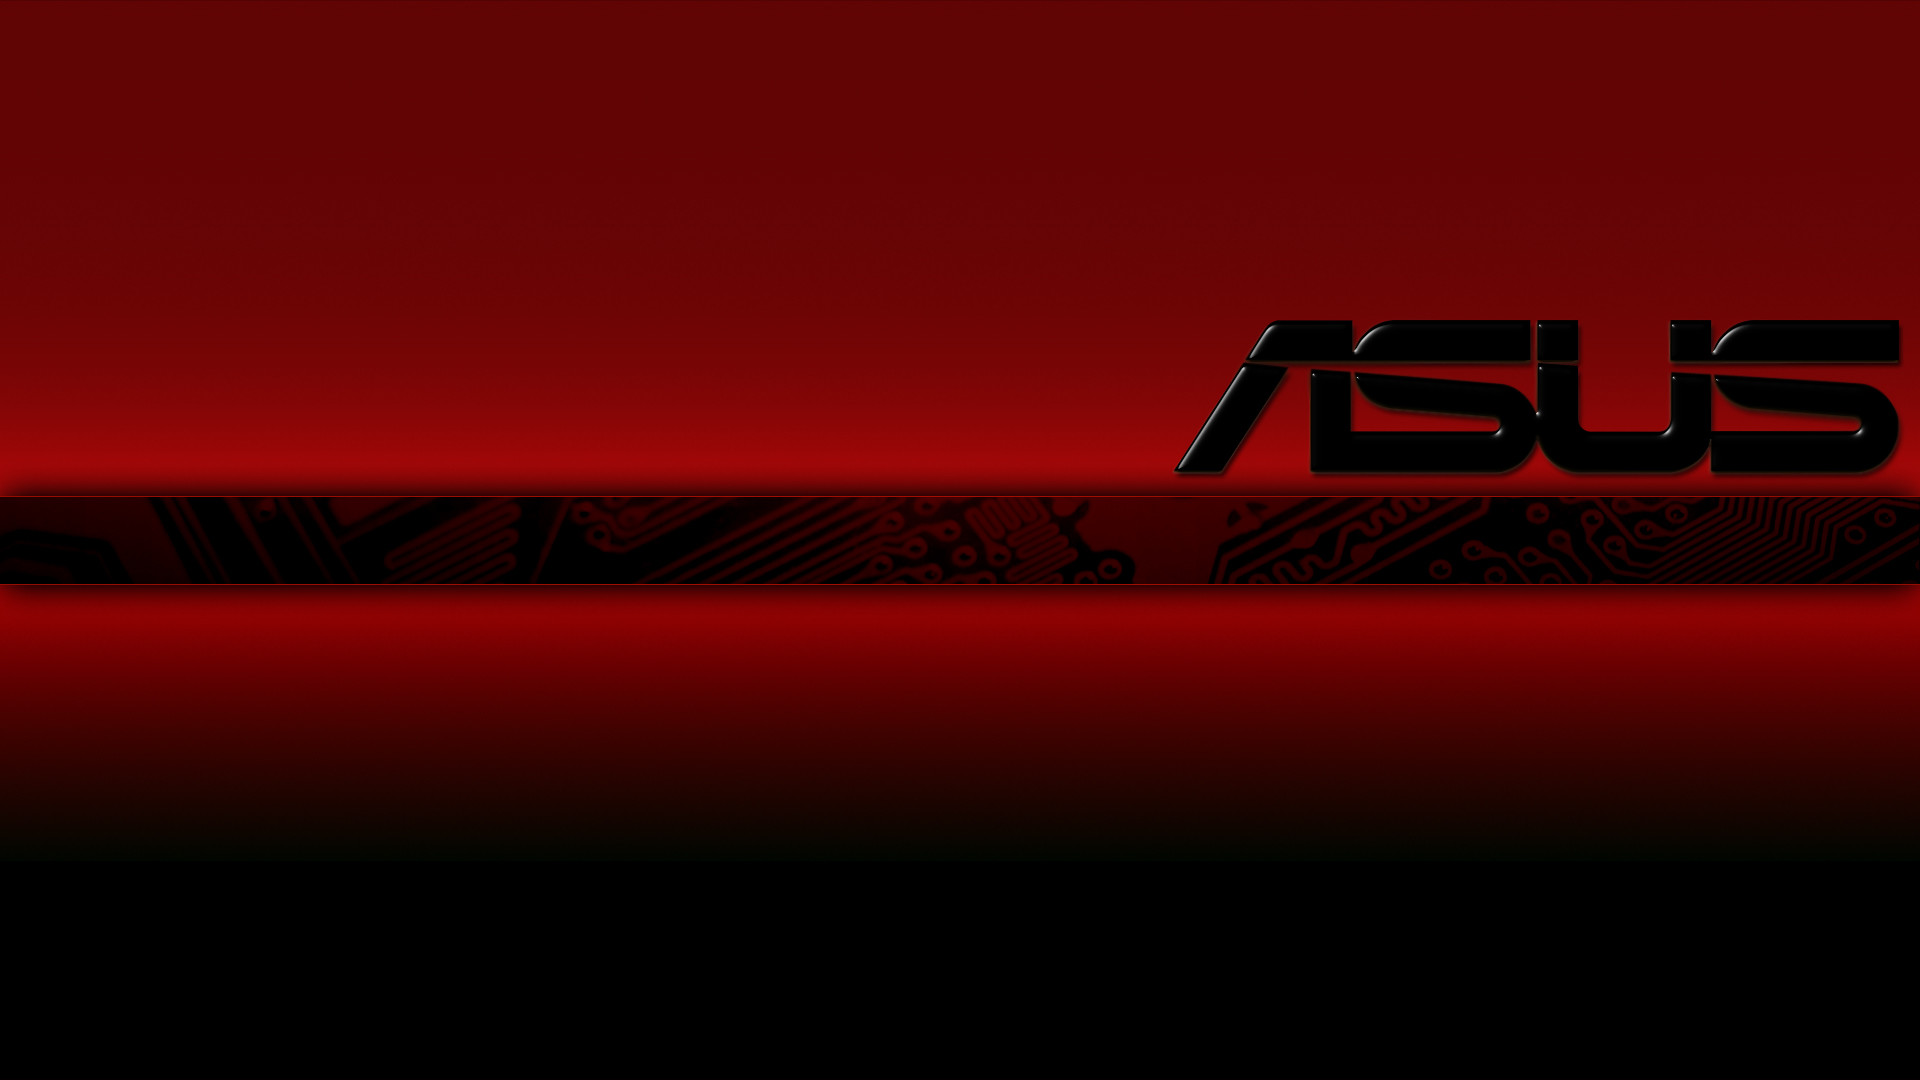 Red Asus Wallpaper: Black And Red Wallpaper 1920x1080 (75+ Images